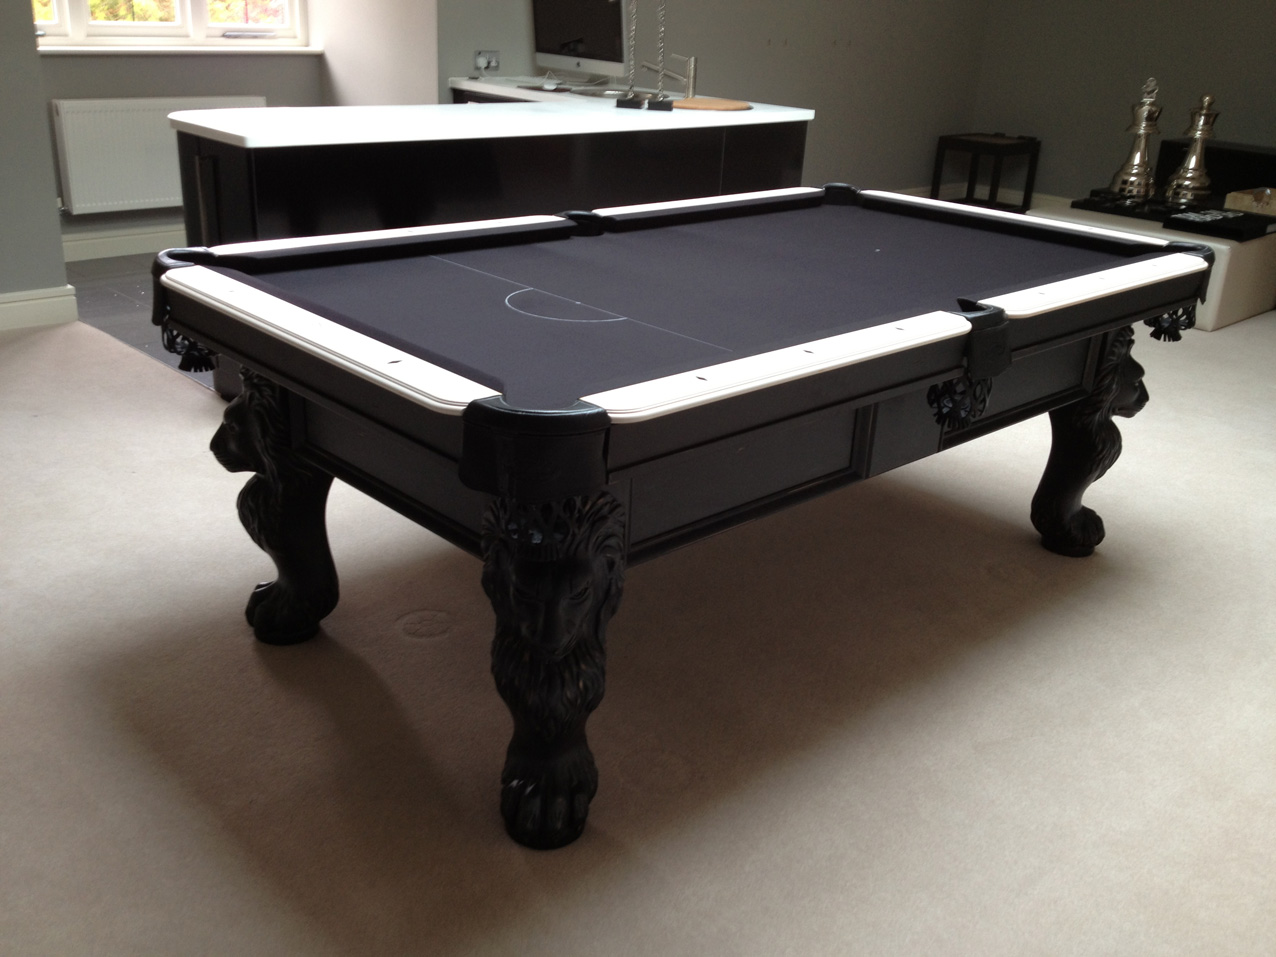 Olhausen st george pool table in black white finish - Pool table images ...